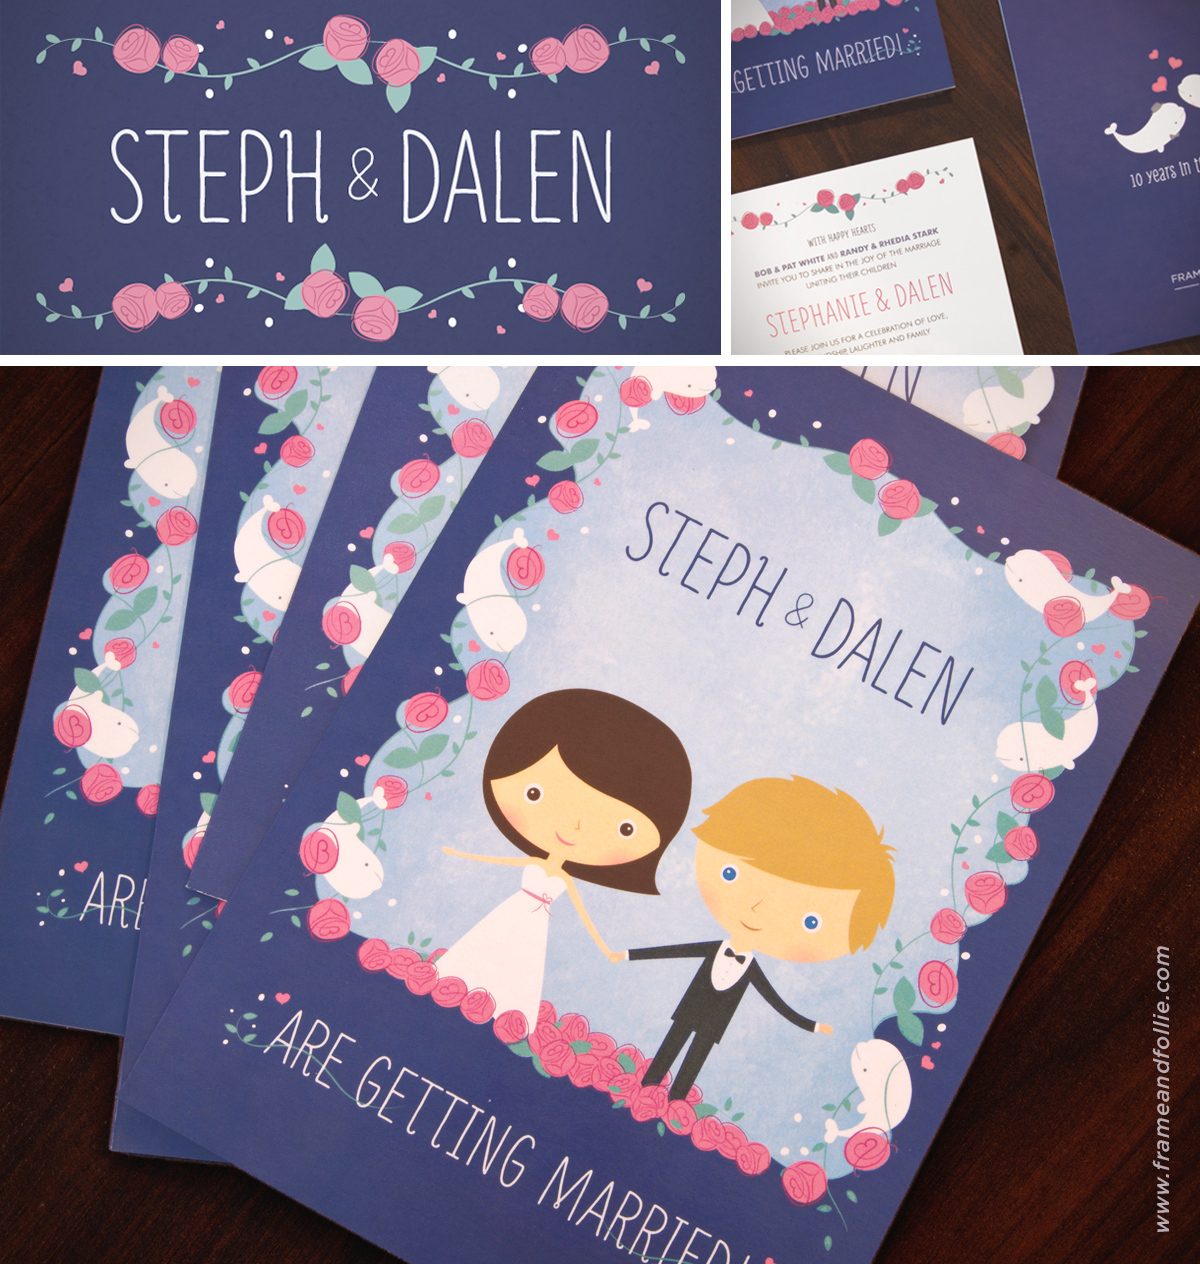 Illustrative wedding invites